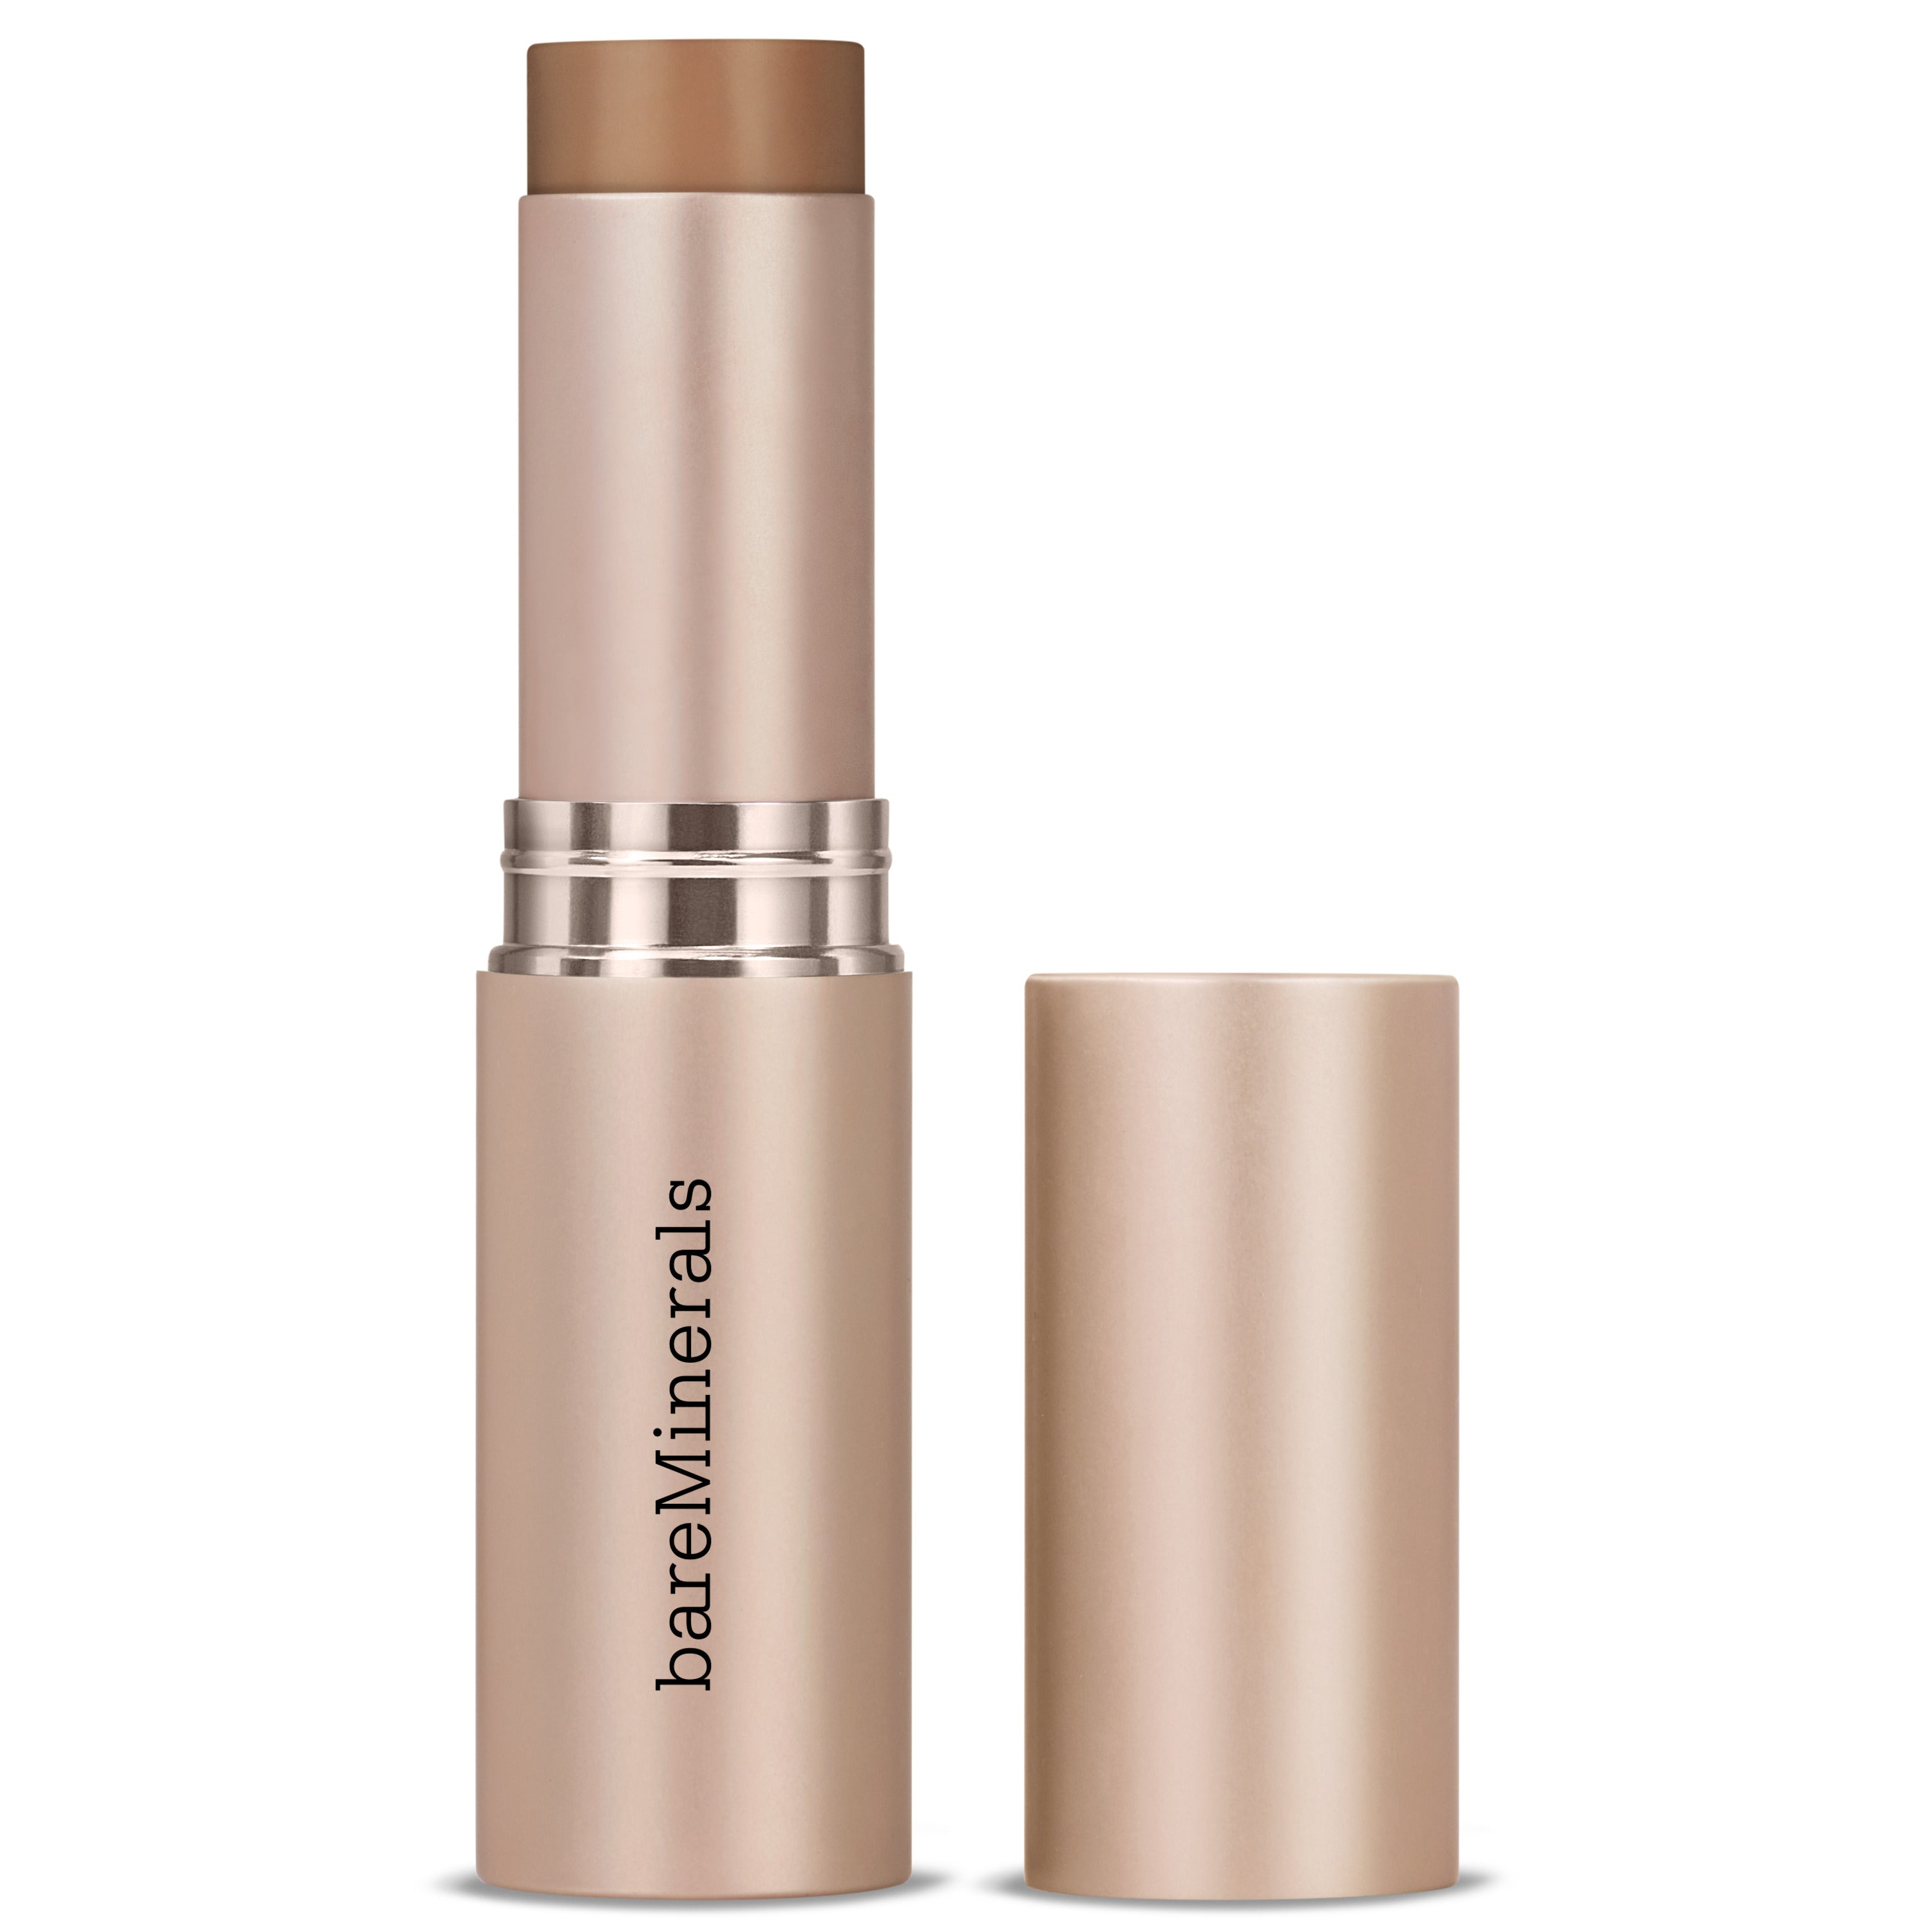 Complexion Rescue Hydrating Foundation Stick SPF 25 Chestnut 09